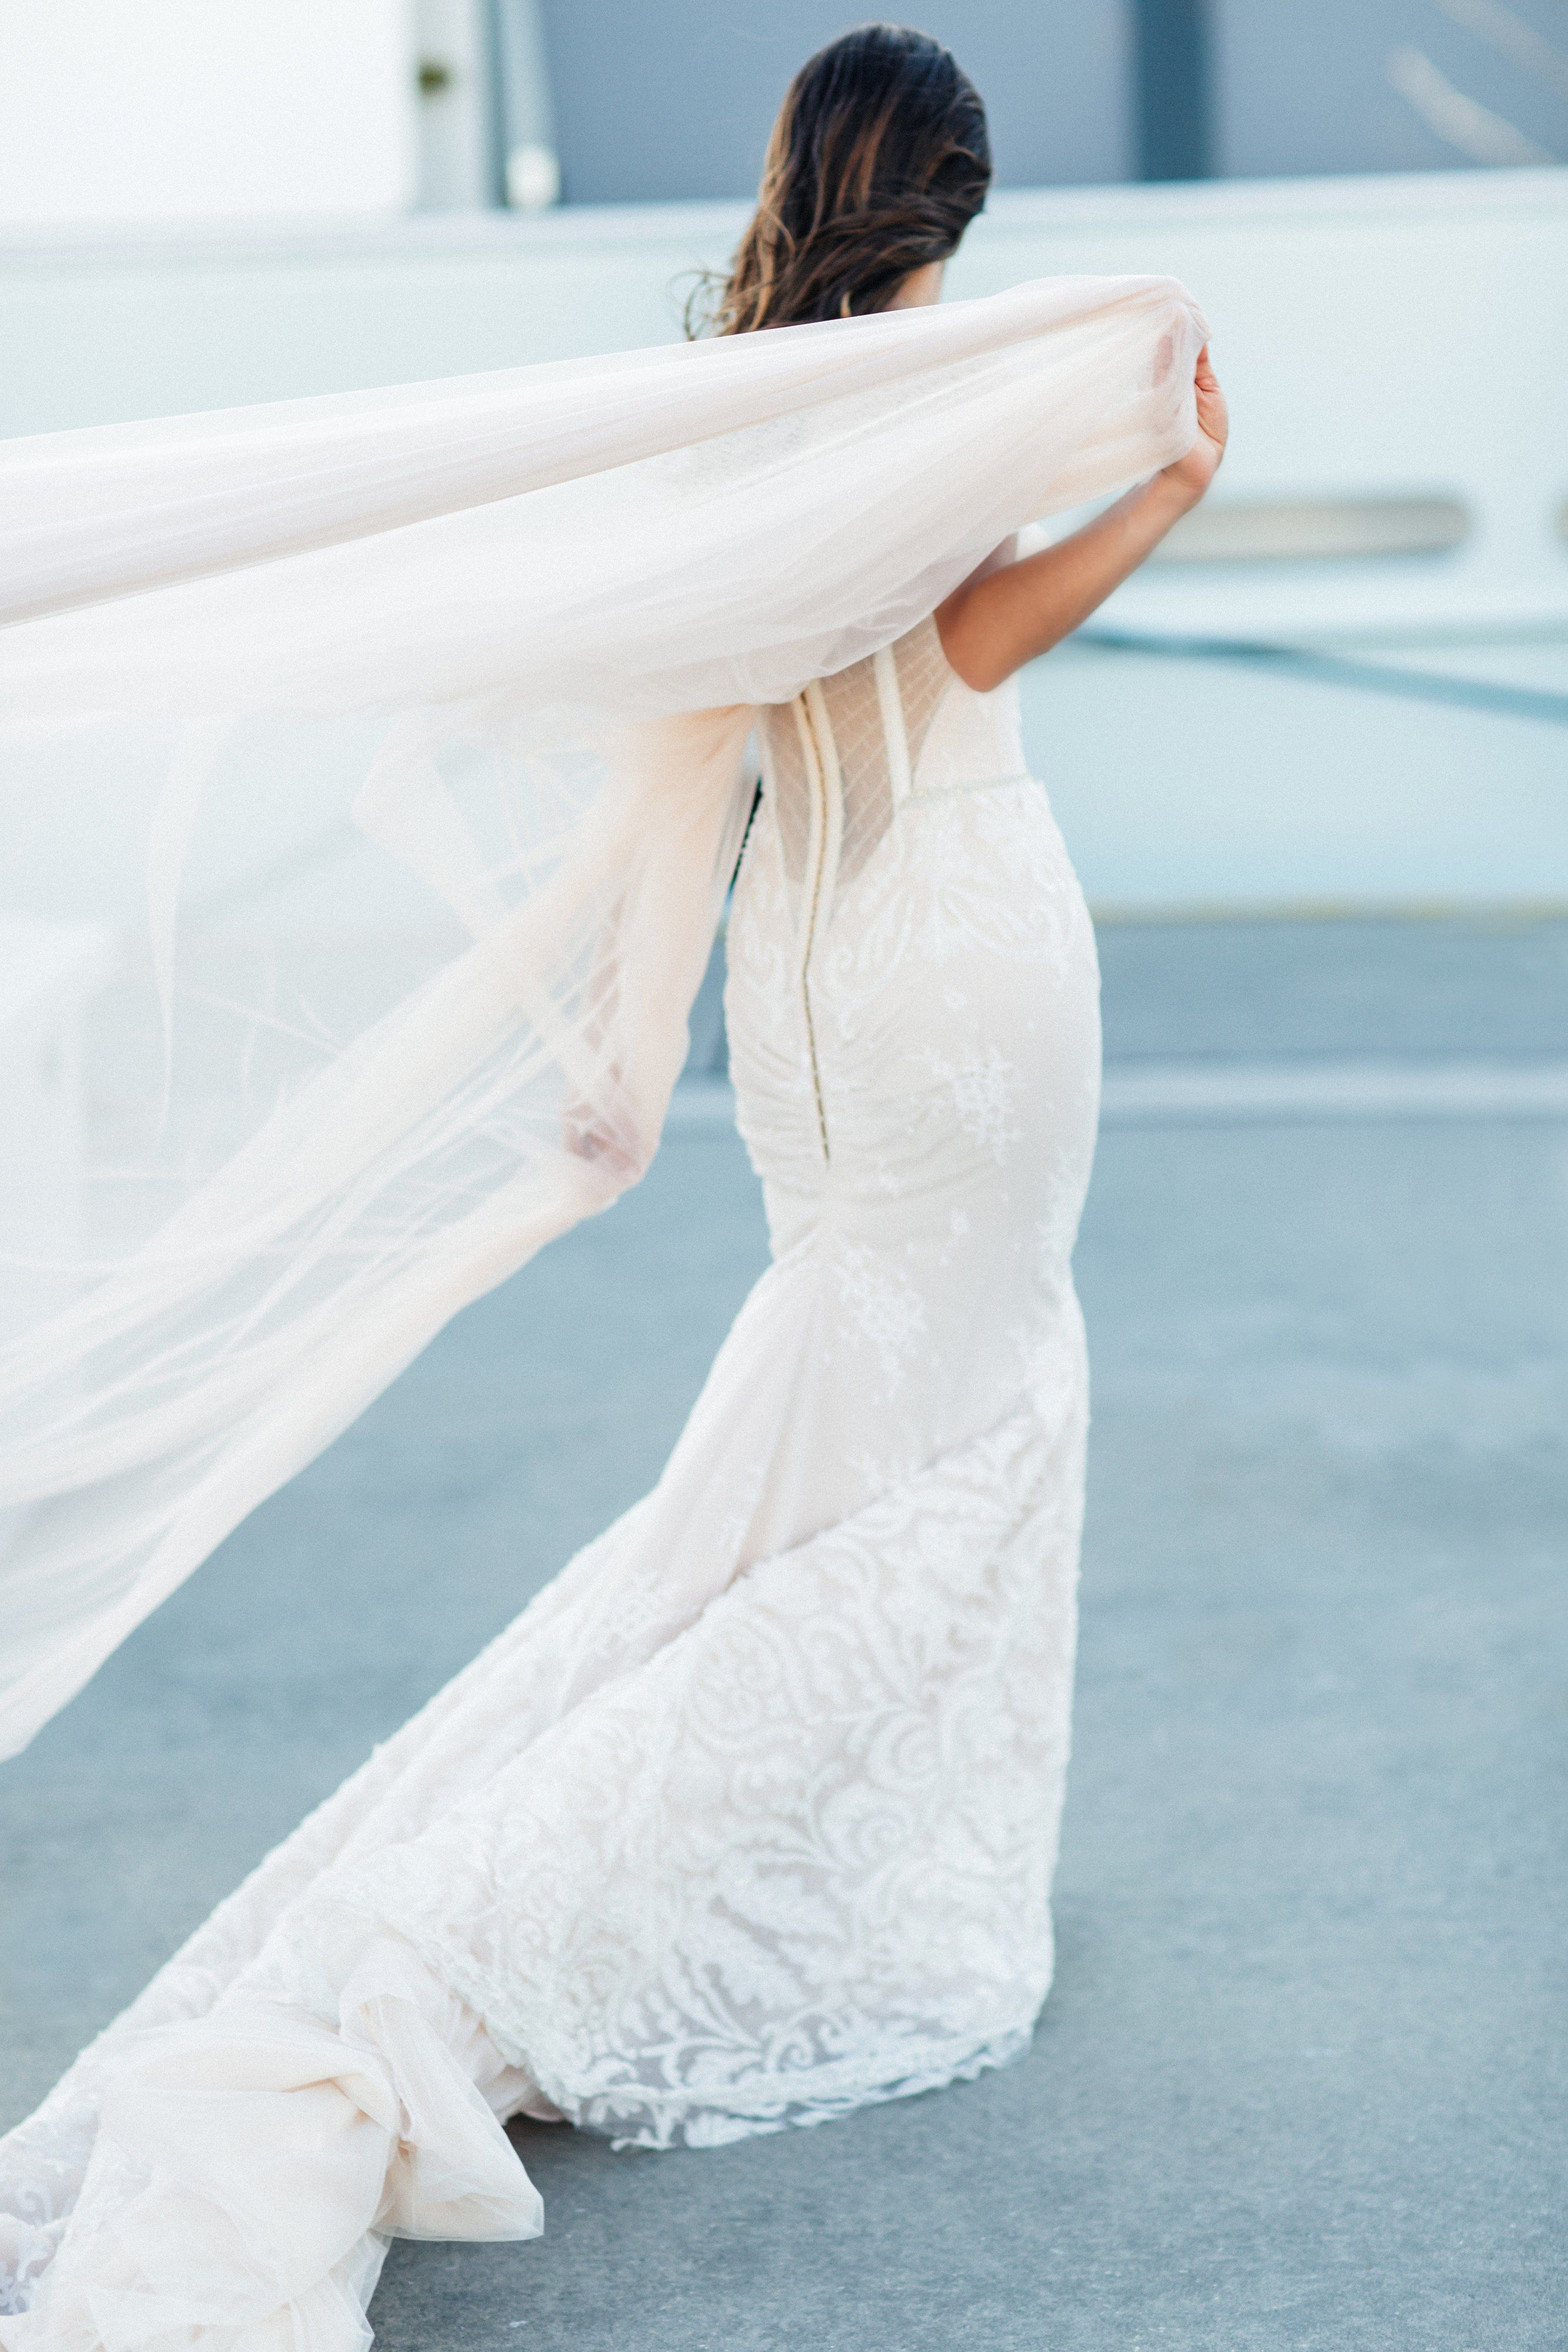 Would You Wear a Different Wedding Dress If You Had the Chance?